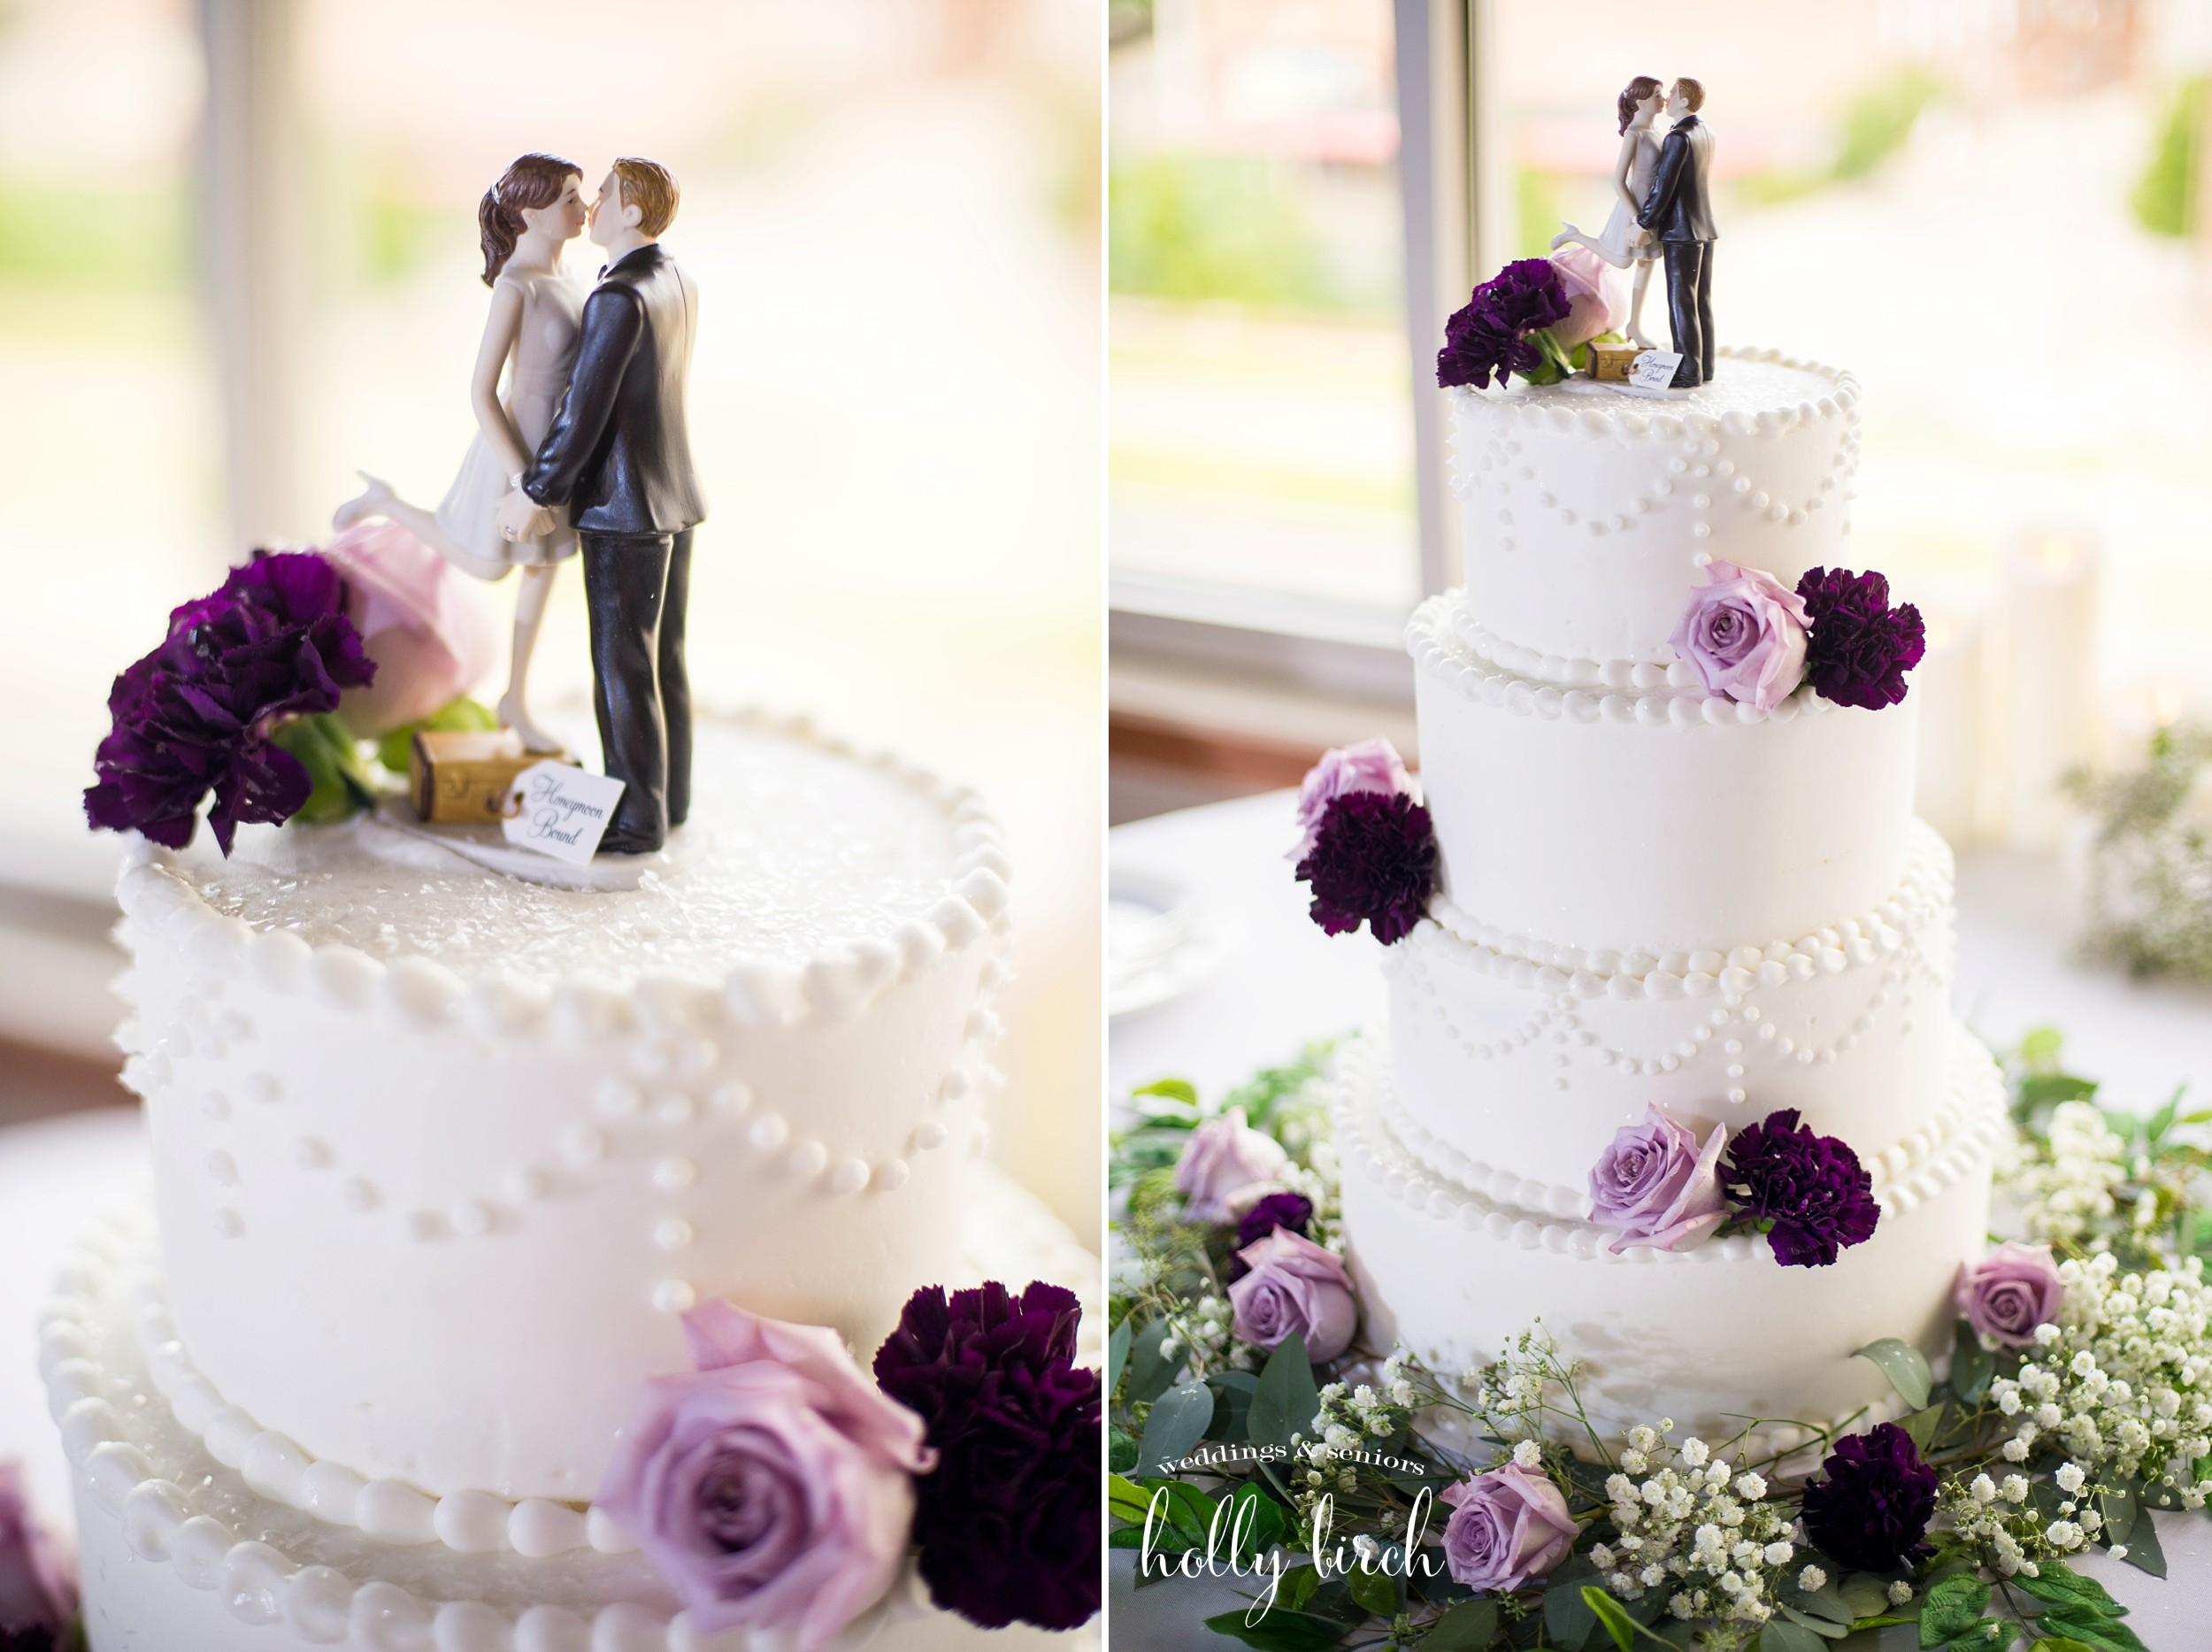 wedding cakes by Lori